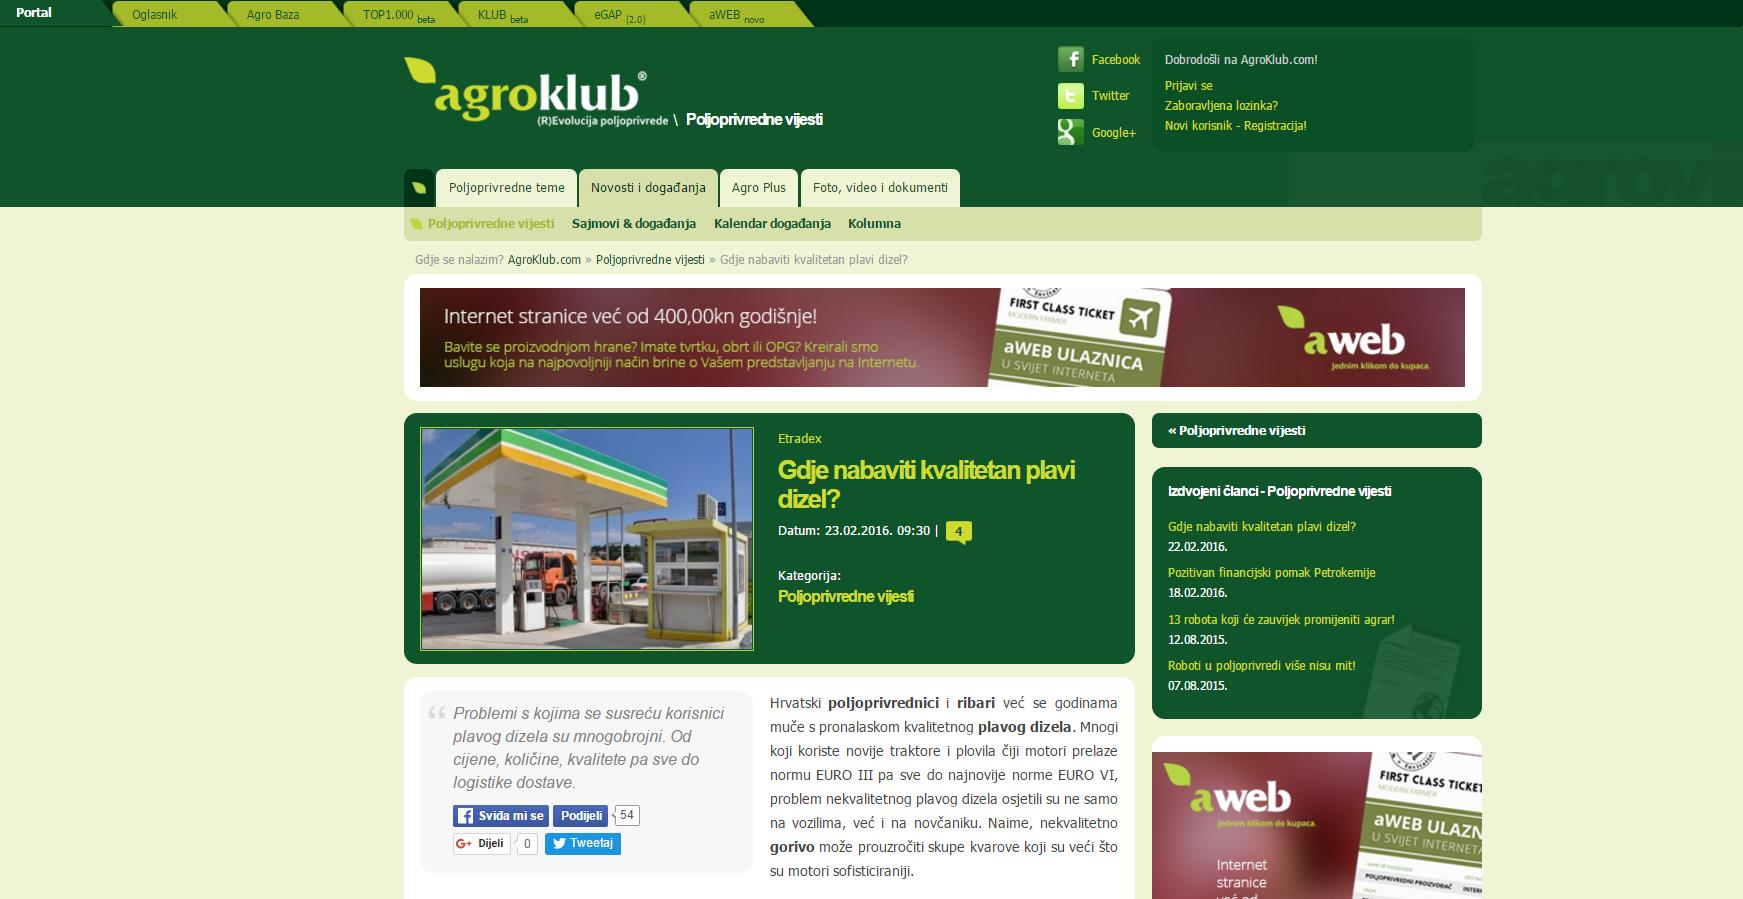 Etradex-Agroklub partner